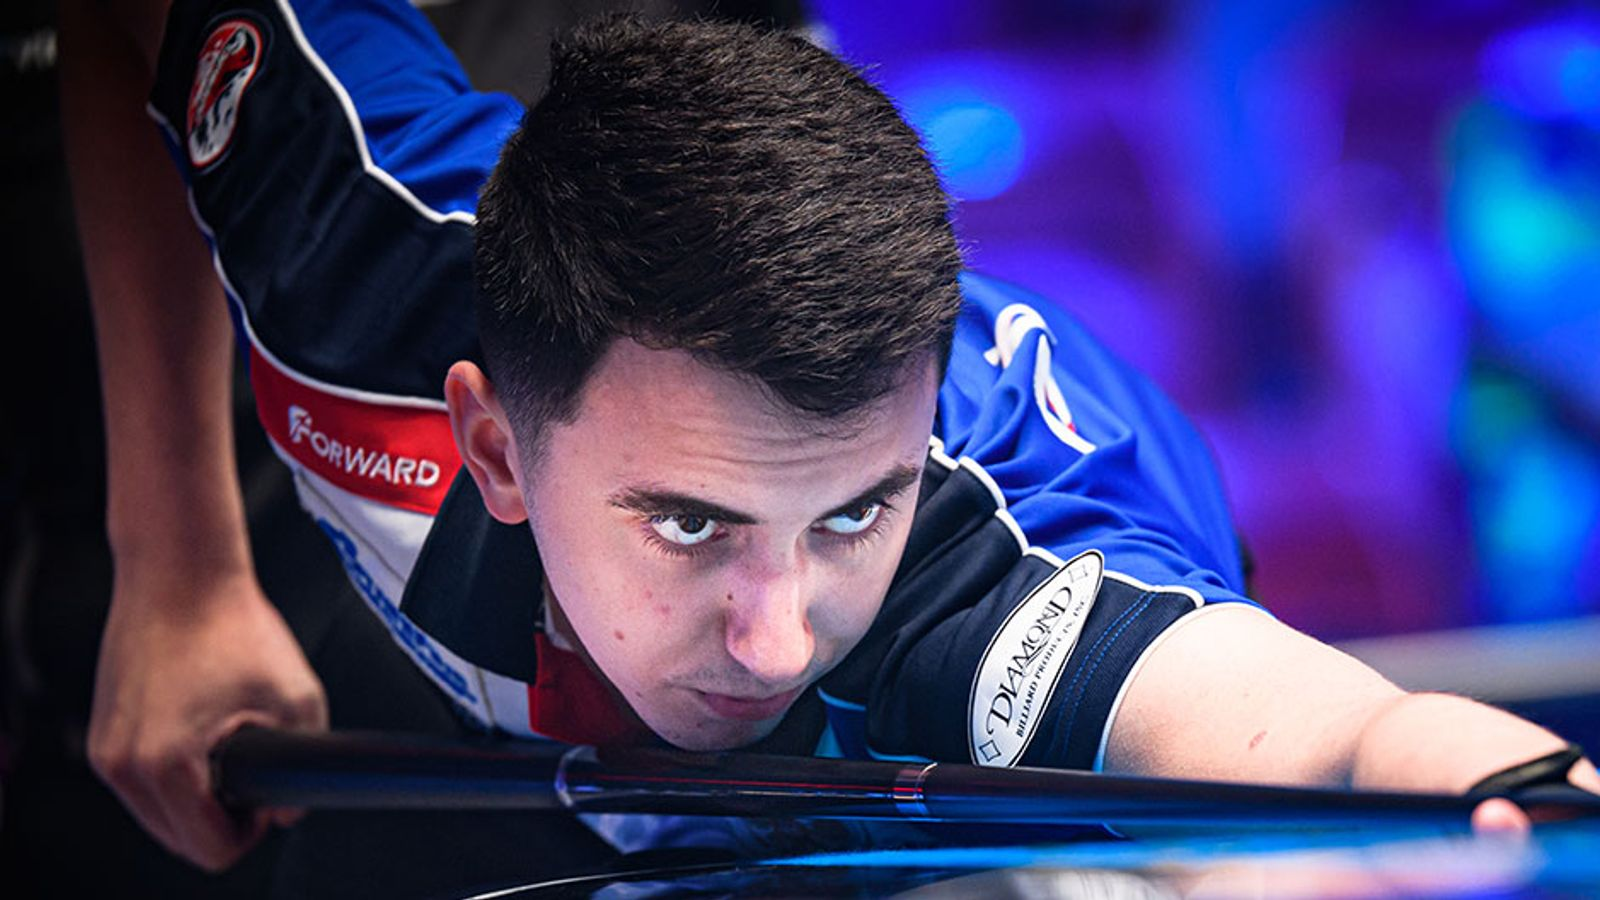 World Pool Championship: Fedor Gorst survives scare as Jayson Shaw and Alex Kazakis both win